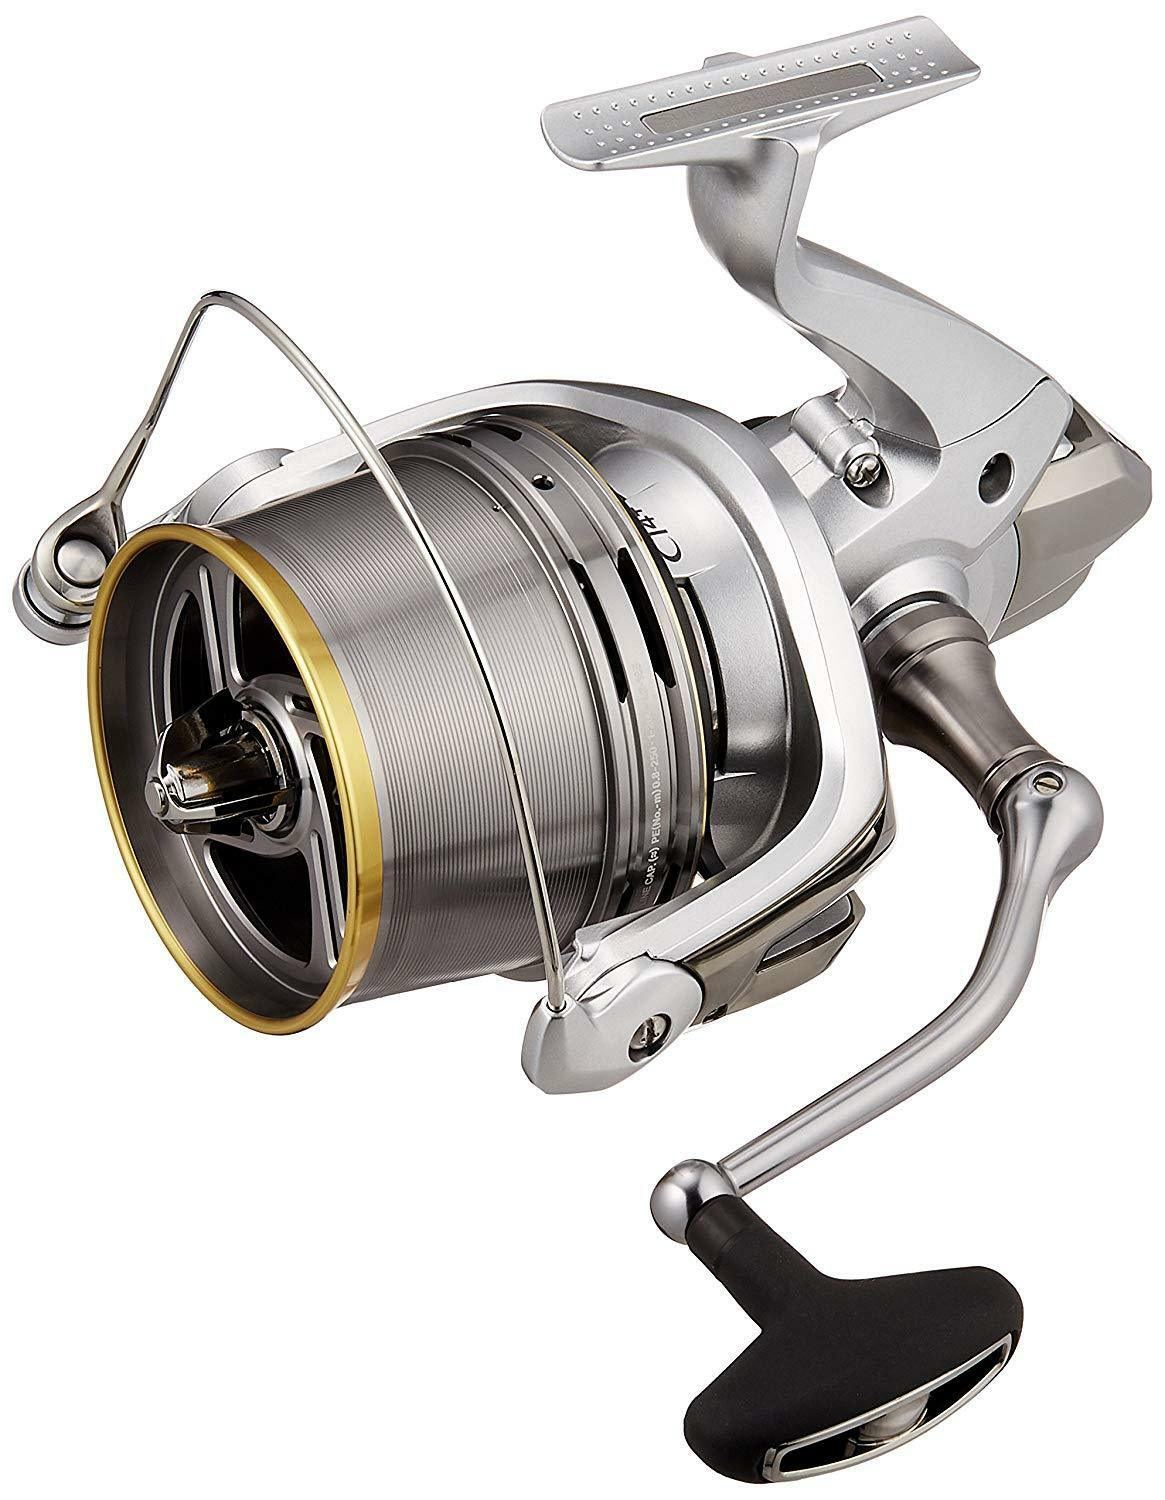 Shimano Spinning Reel 18 SURF LEADER CI4+ 35 Fine thread from japan【New in Box 】